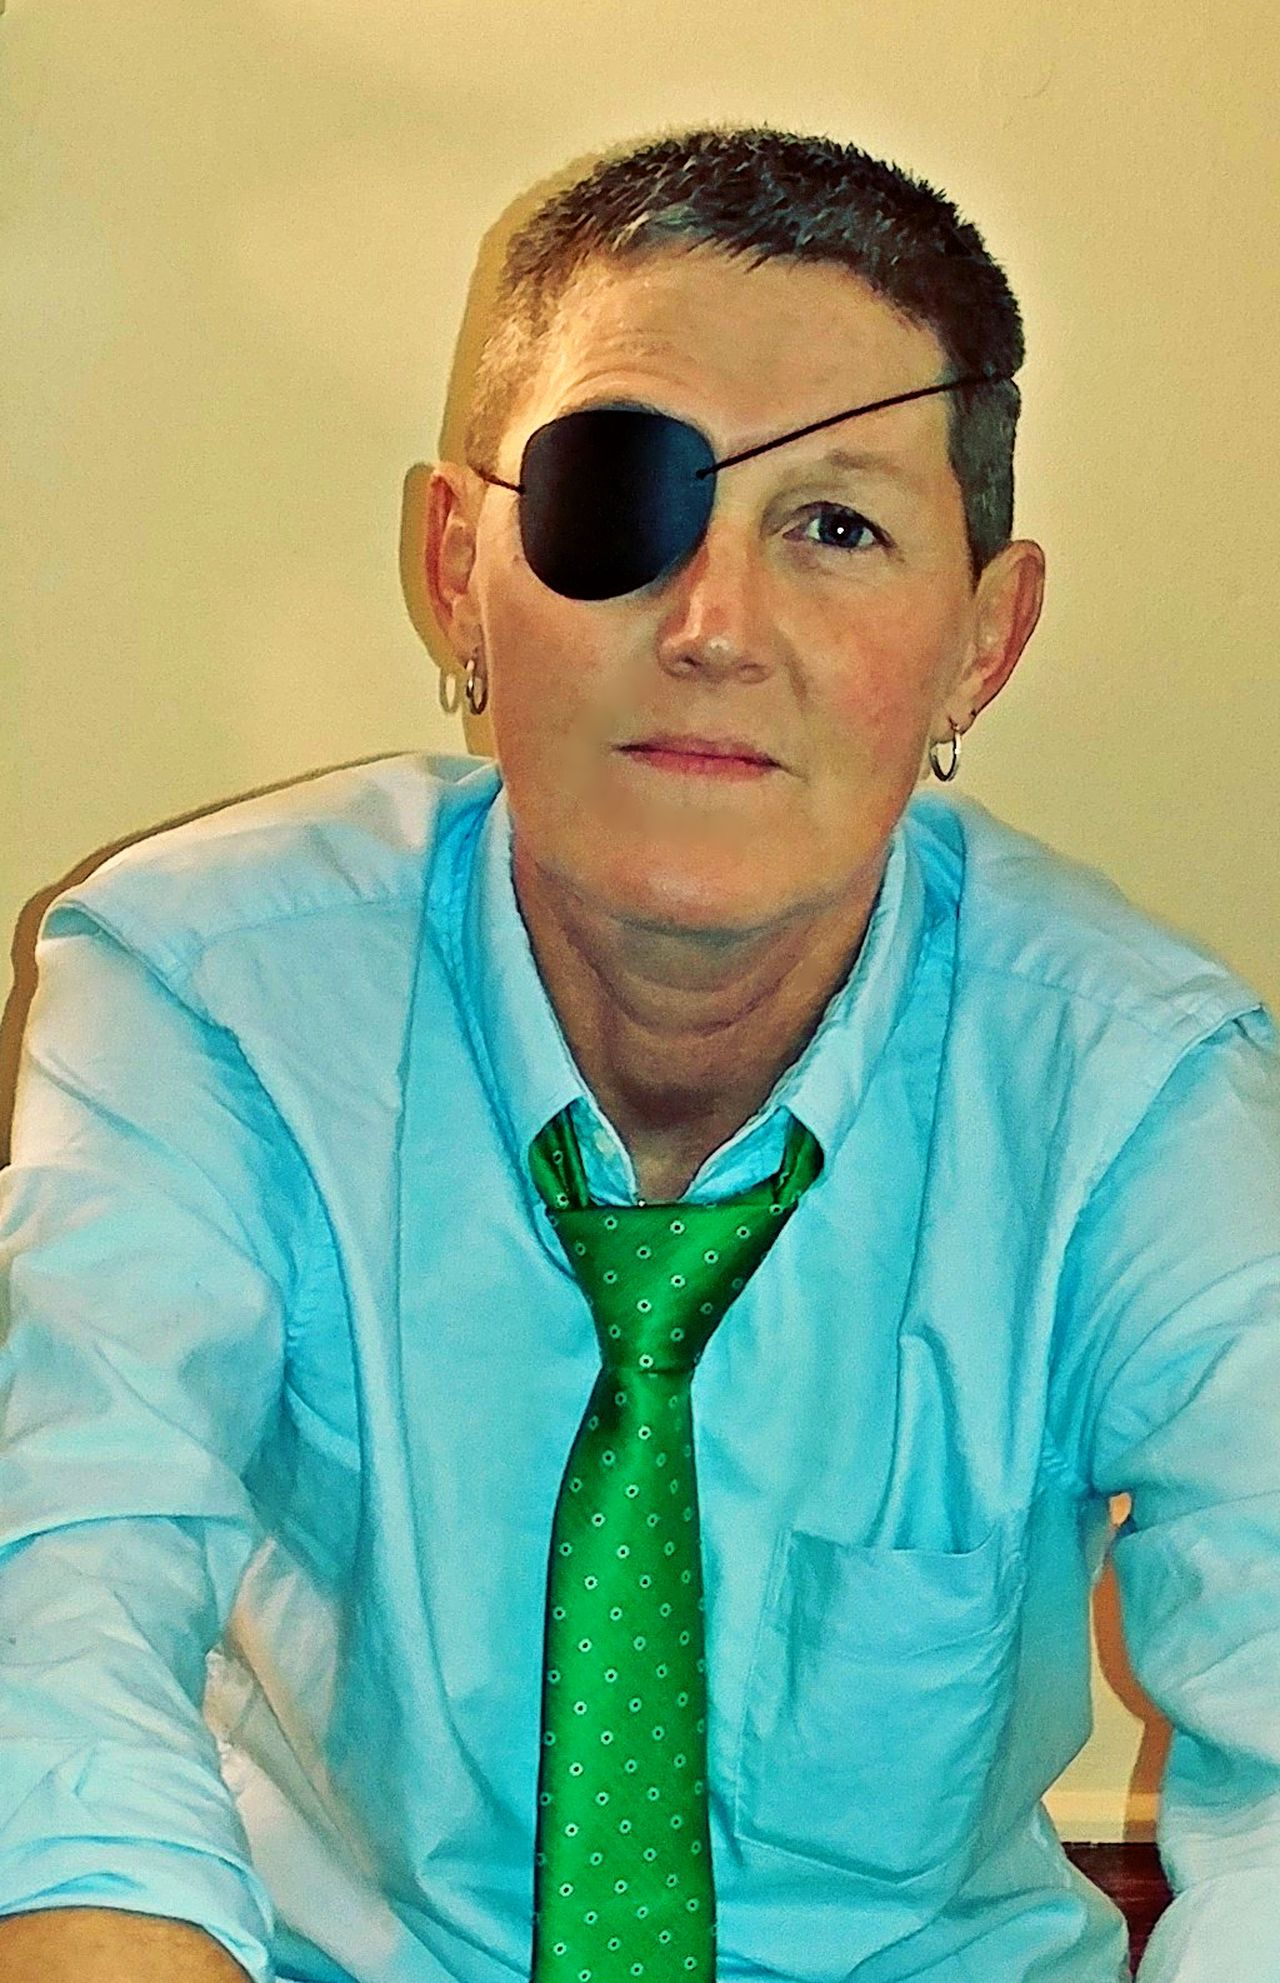 One Person Adult Looking At Camera Front View Real People Day Indoors  Lexington Kentucky  The Portraitist - 2017 EyeEm Awards Eye Patch Blindness One Young Woman Only Adult Tie Button Down Shirt Dominiquephotography The Portraitist - 2017 EyeEm Awards The Week On EyeEm Investing In Quality Of Life